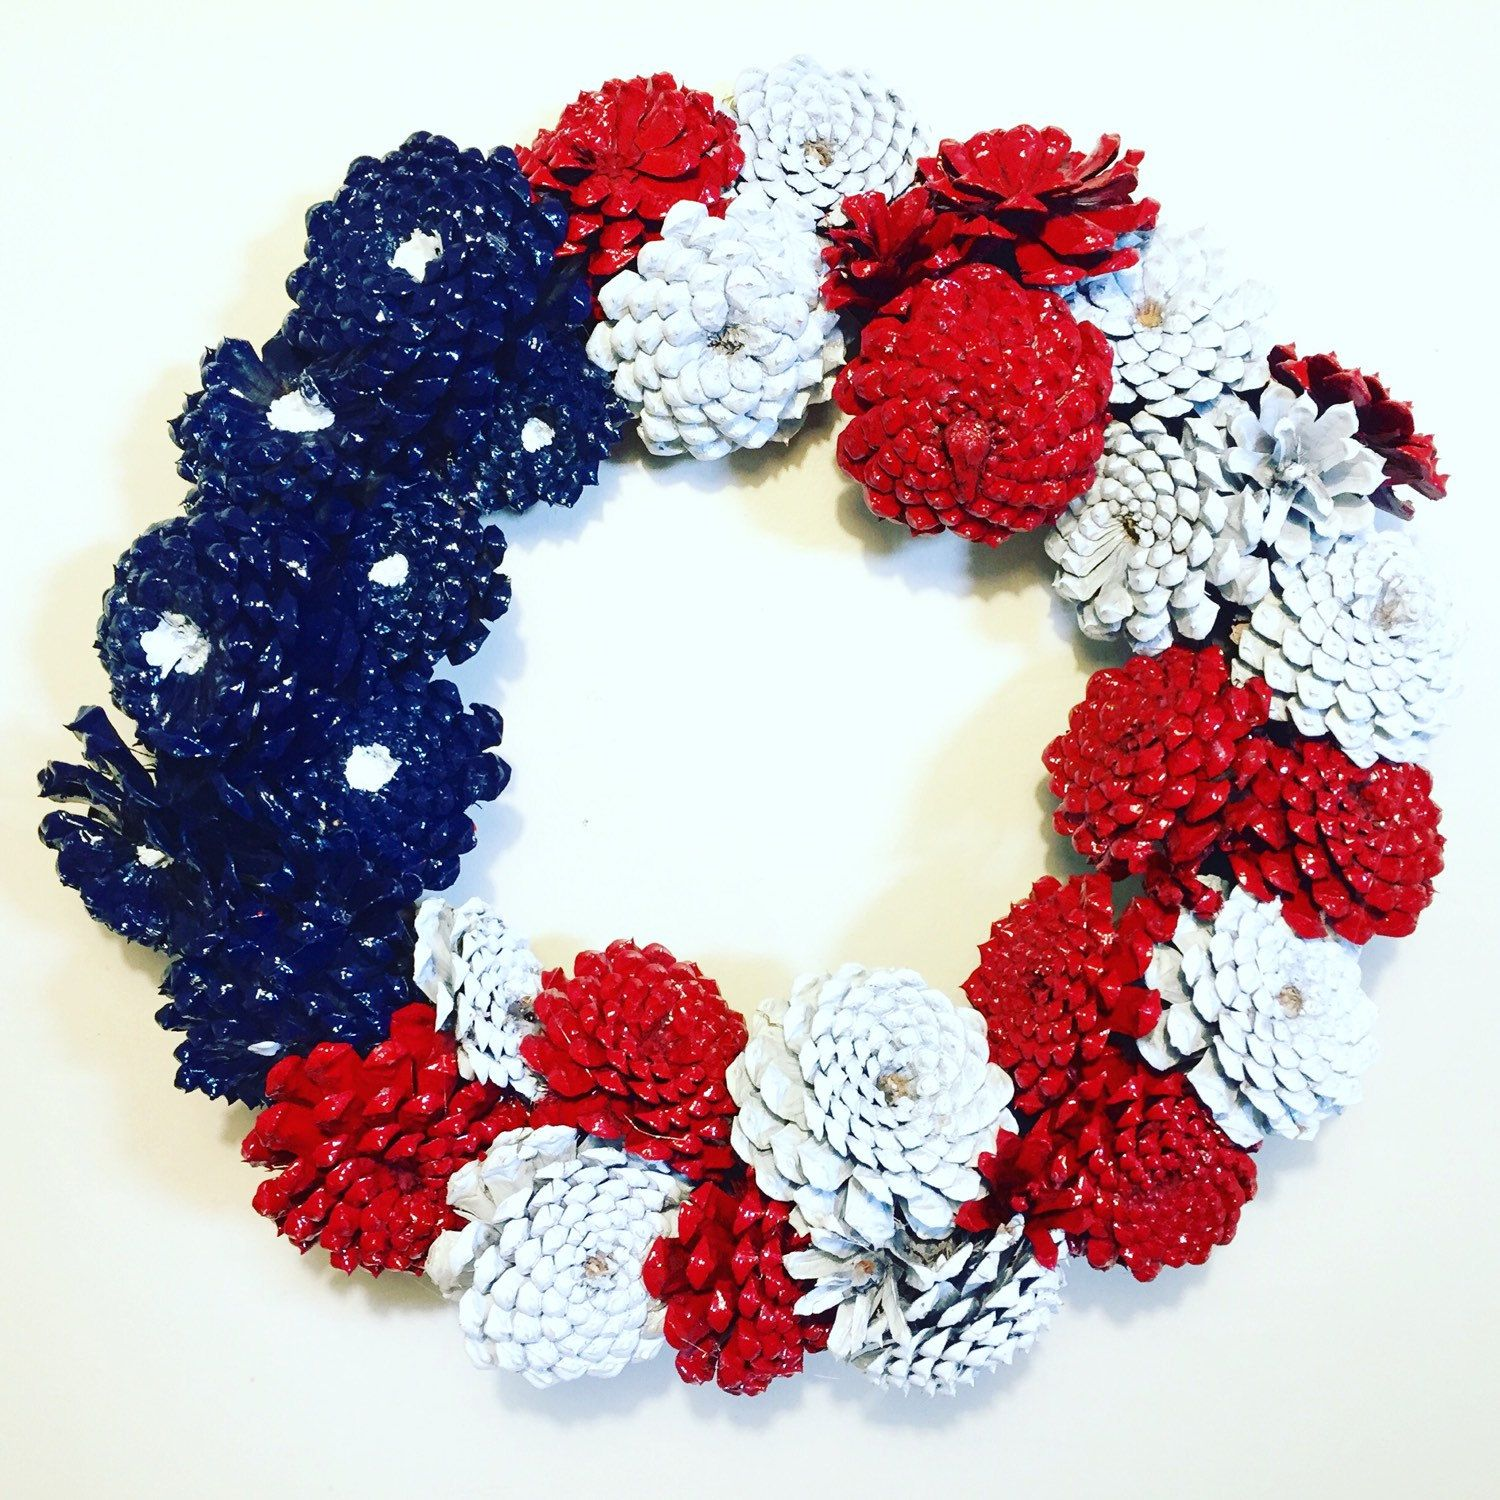 SouthernEscentuals shared a new photo on -   23 pinecone crafts white